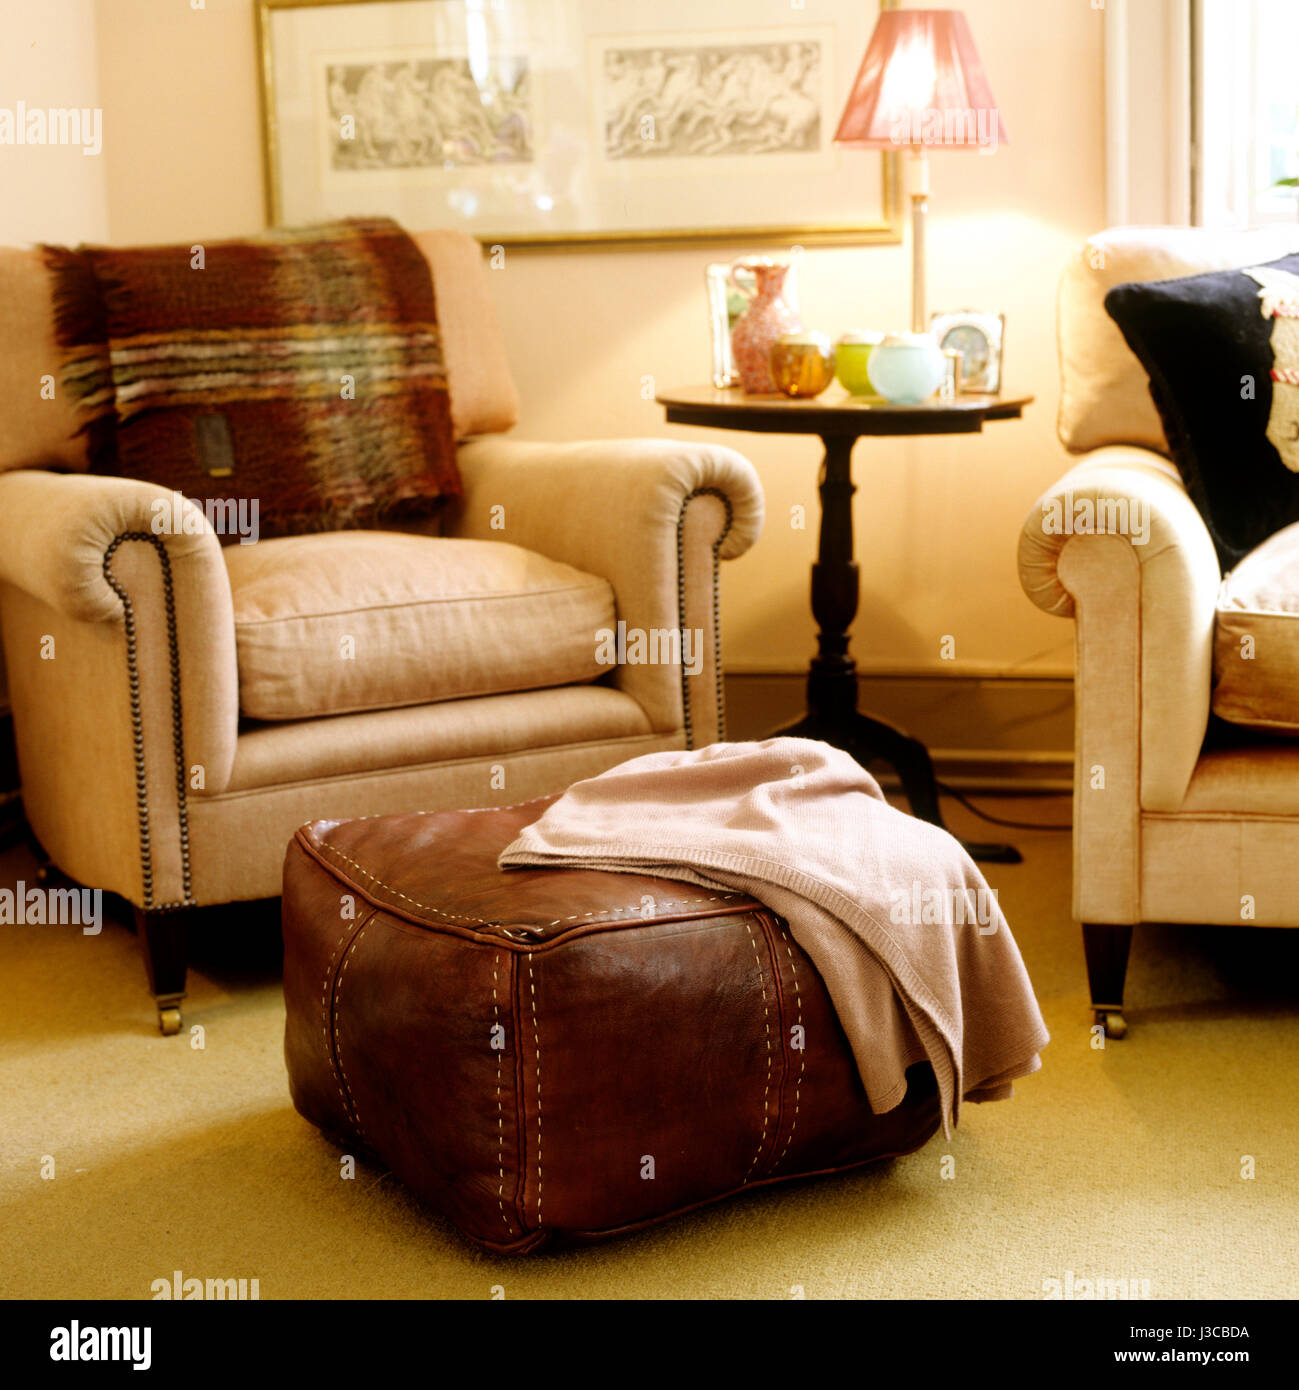 Cashmere Blanket On Leather Floor Cushion In Sitting Room With